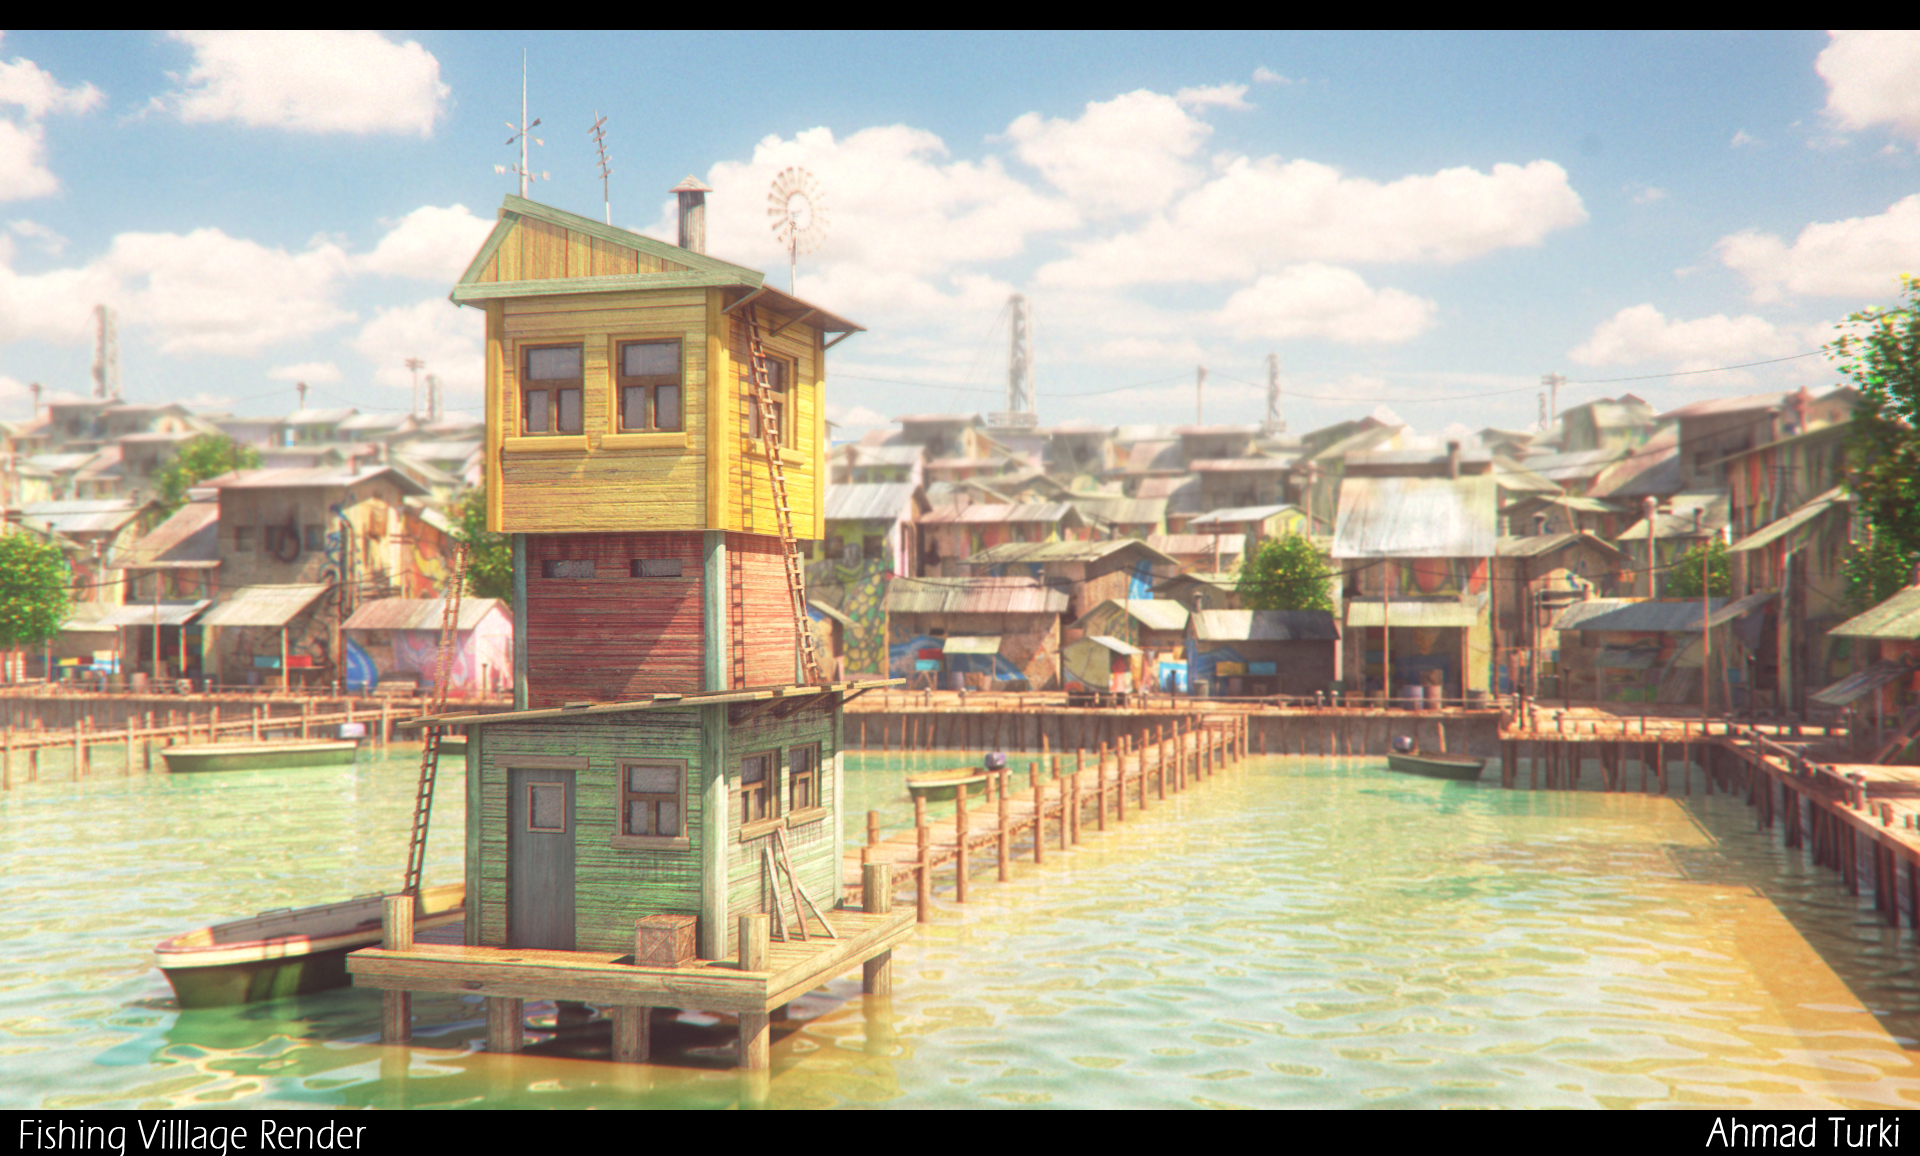 Fishing Village Render